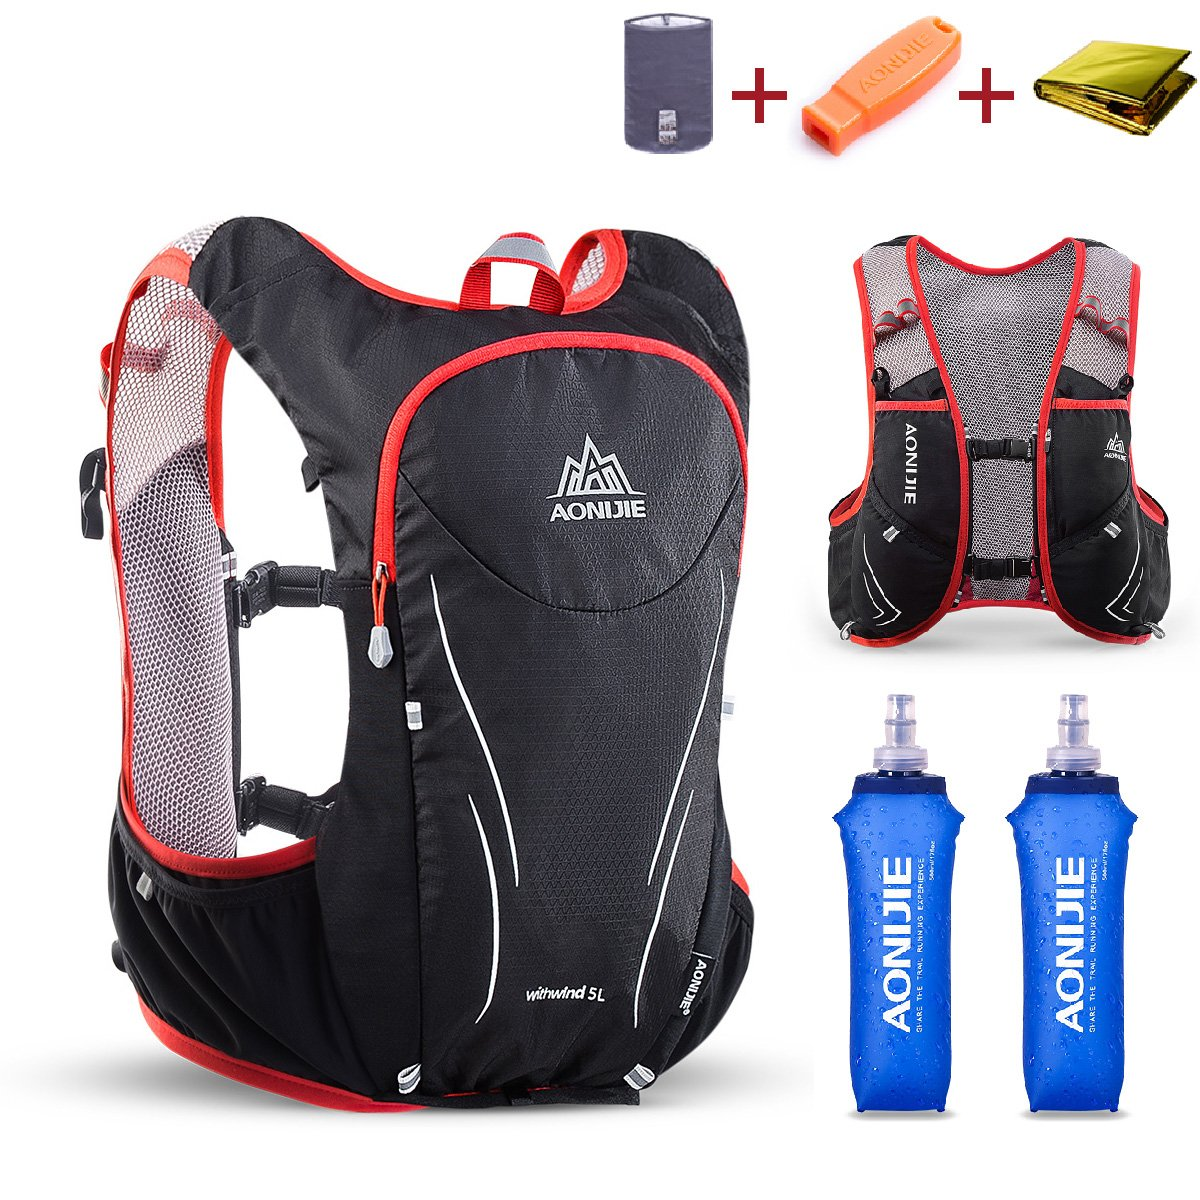 TRIWONDER Hydration Pack Backpack 5L Lightweight Deluxe Marathoner Running Race Hydration Vest (Black & Red - with 2 Soft Water Bottles, M/L - 34.6-39.4in)